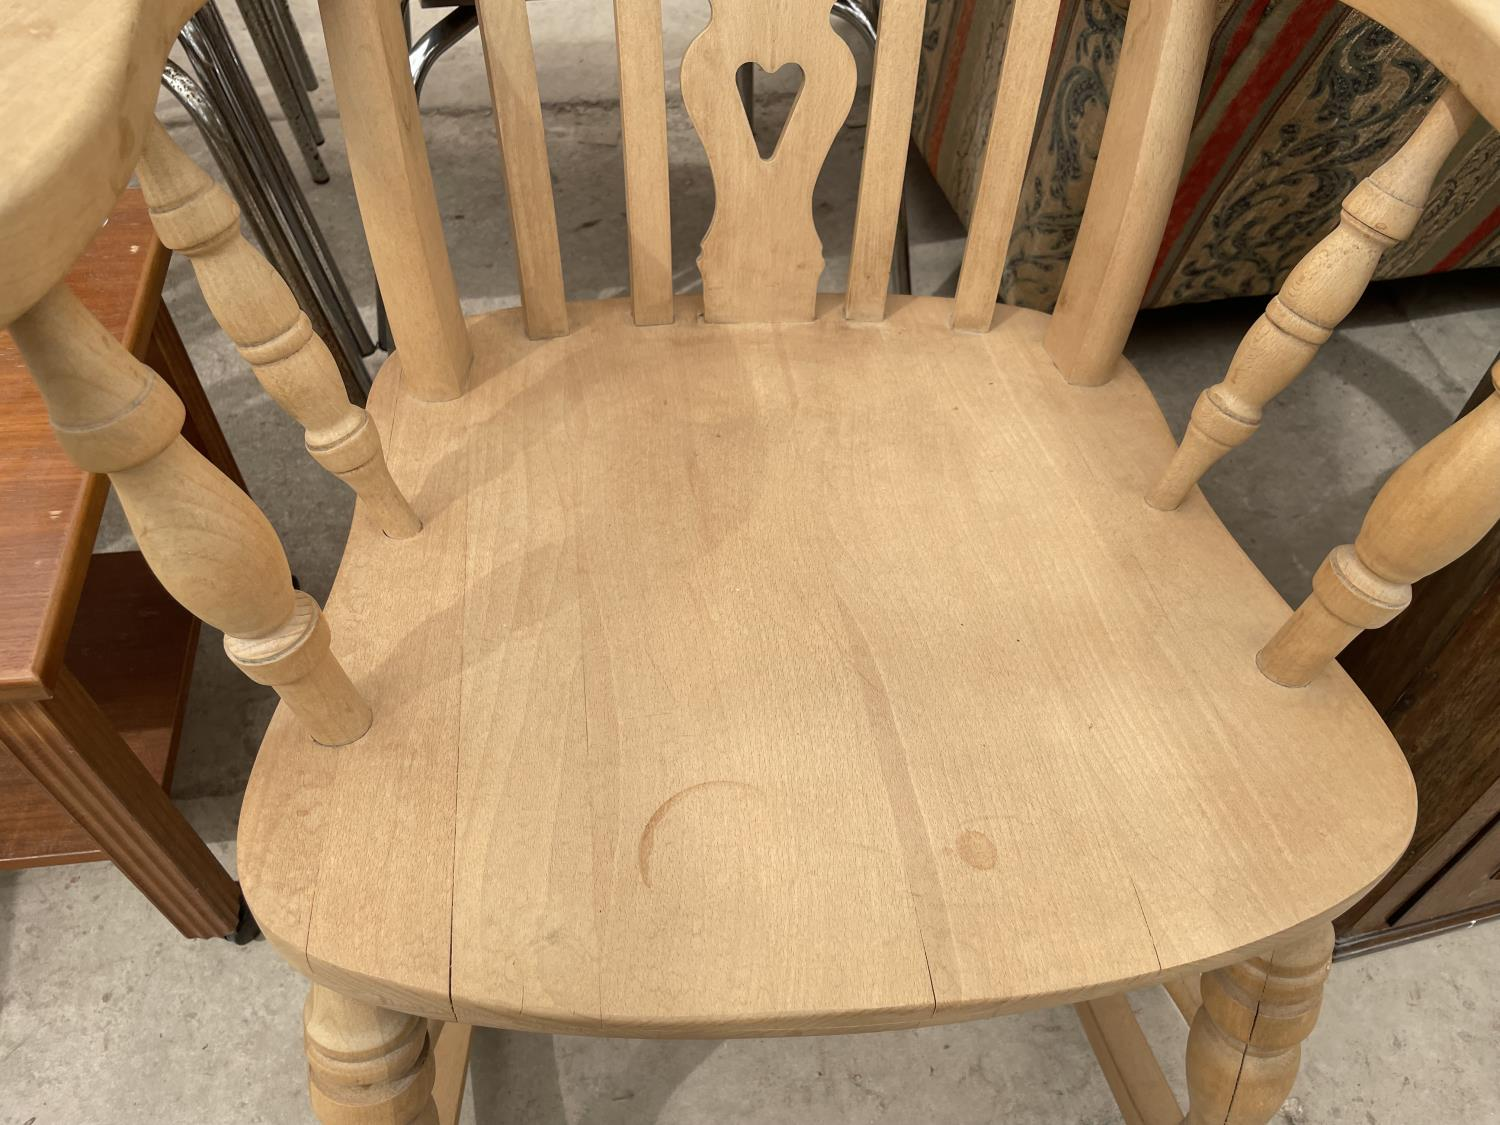 A VICTORIAN STYLE FARMHOUSE ROCKING CHAIR - Image 3 of 4